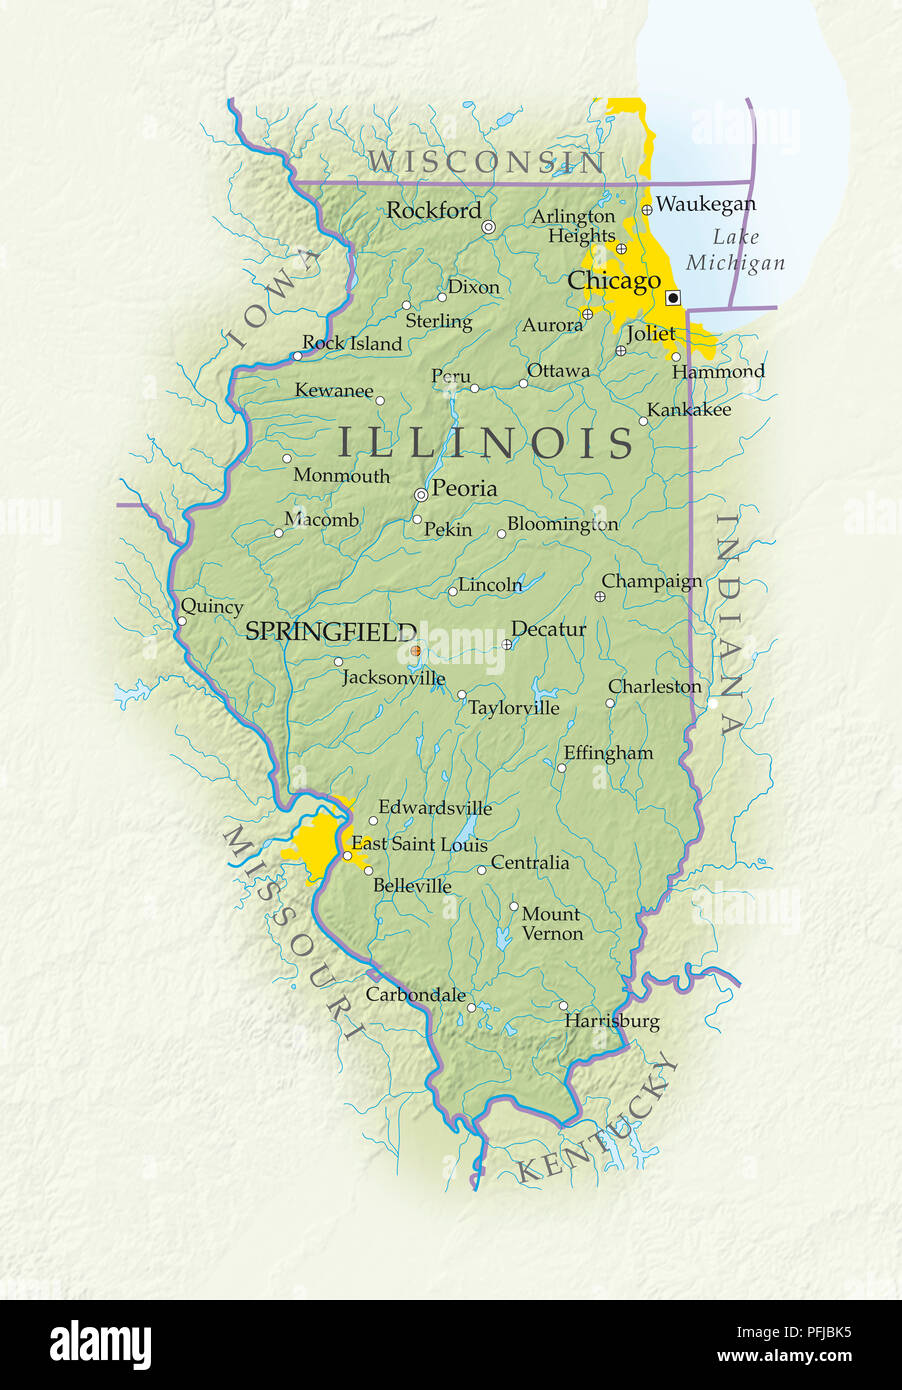 Map of Illinois, close-up Stock Photo: 216148553 - Alamy